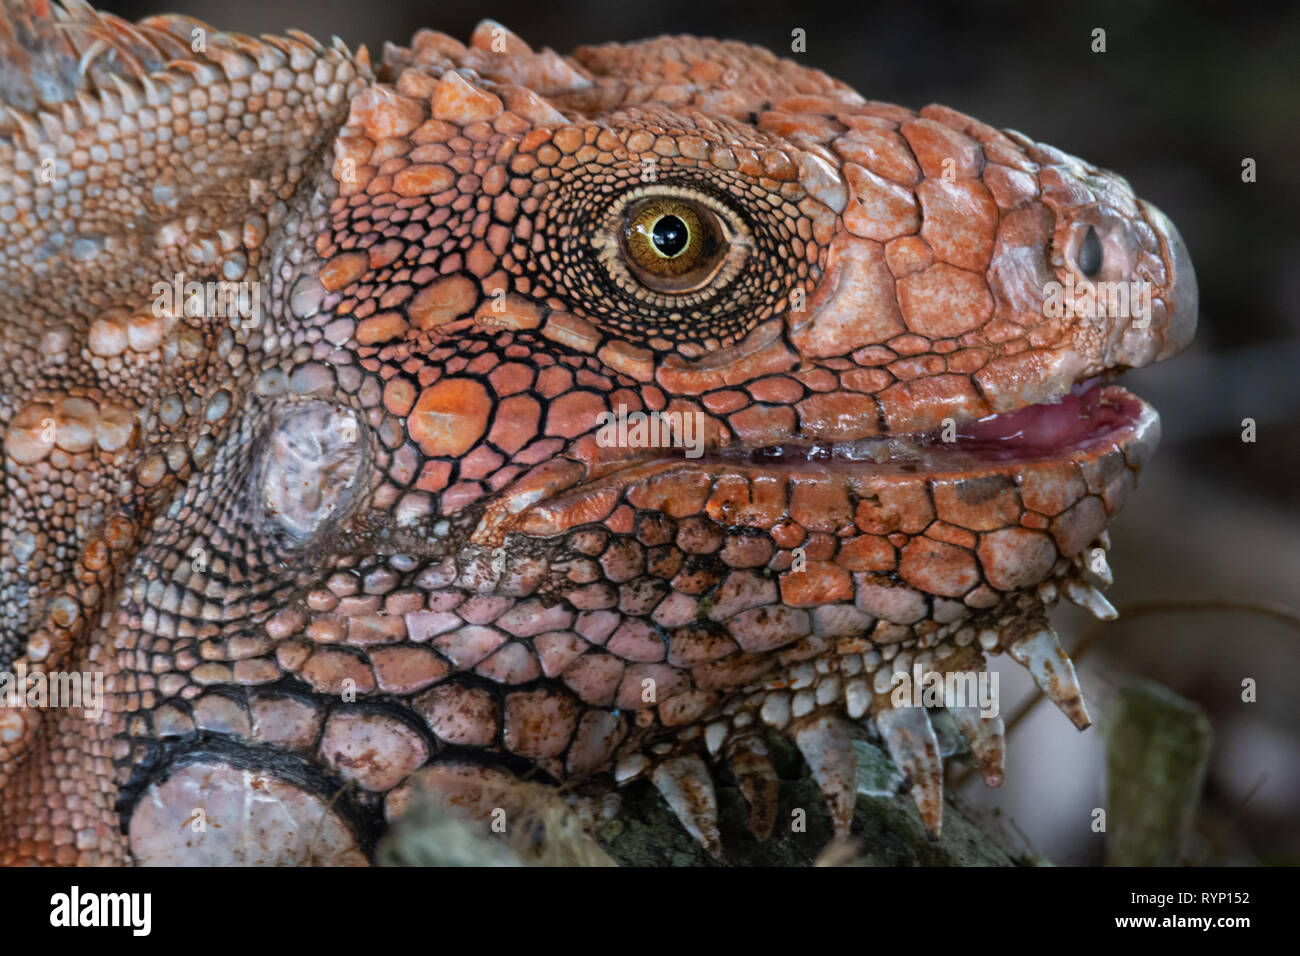 American Iguana gives a bit of tongue in this close up shot of its scaly orange head - Stock Image